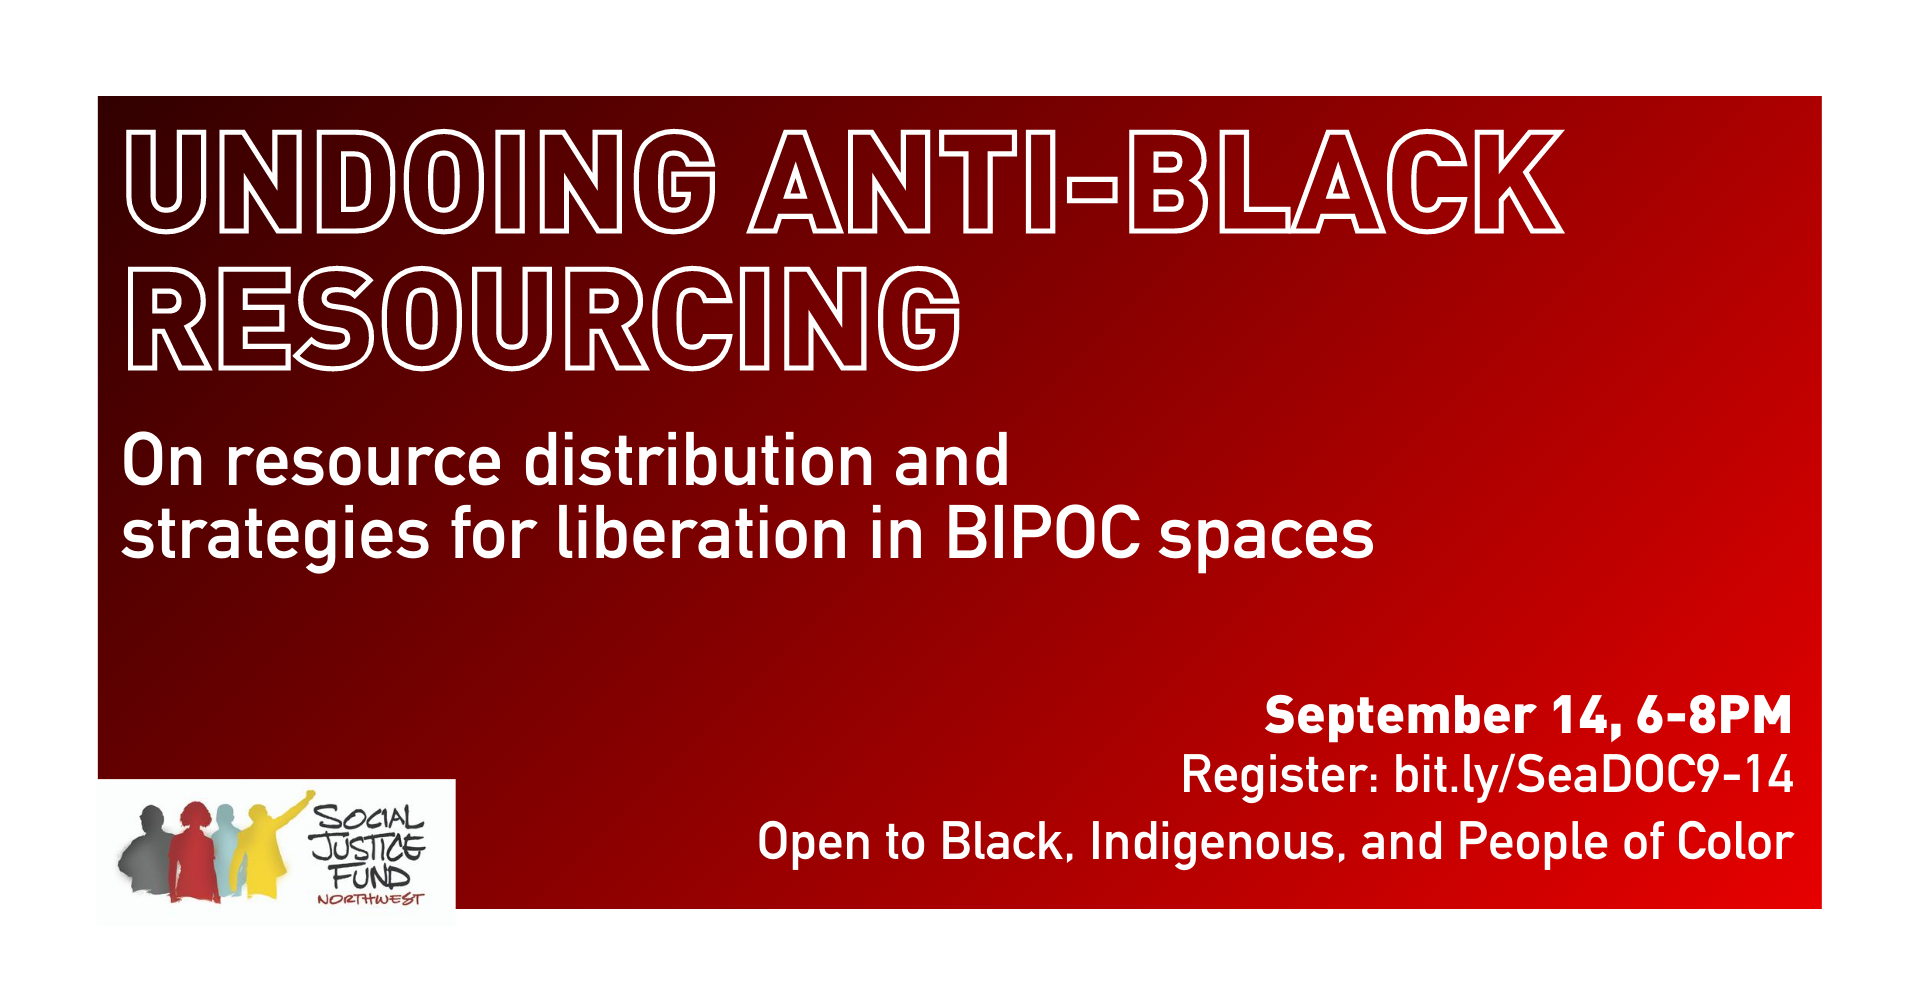 """Black to red ombre rectangle. White text reads, """"Undoing Anti-Black Resourcing. On resource distribution and strategies for liberation in BIPOC spaces. September 14, 6-8pm. Register: bit.ly/SeaDOC9-14. Open to Black, Indigenous, and people of color."""